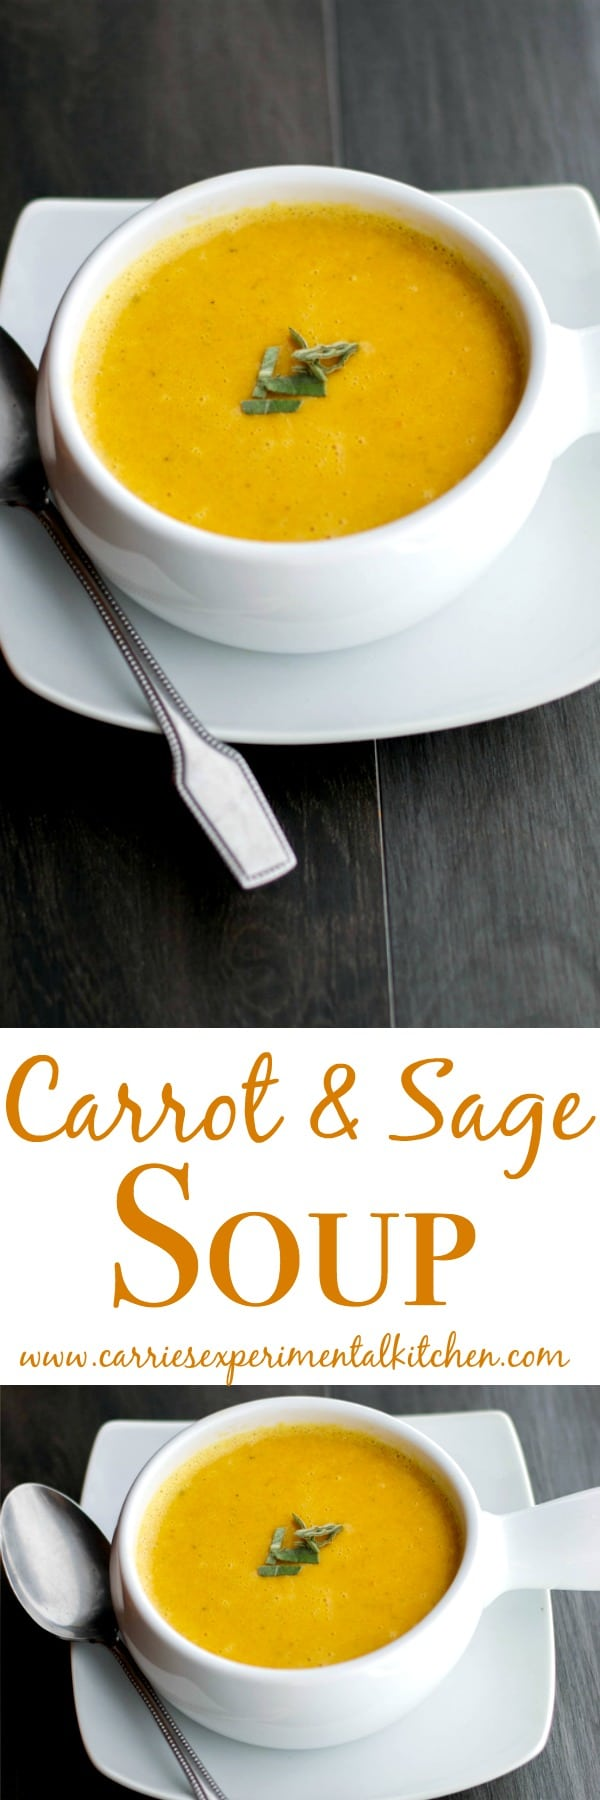 With just a few simple ingredients, you can enjoy this creamy Carrot & Sage Soup in about an hour. The color is perfect for holiday entertaining as well.